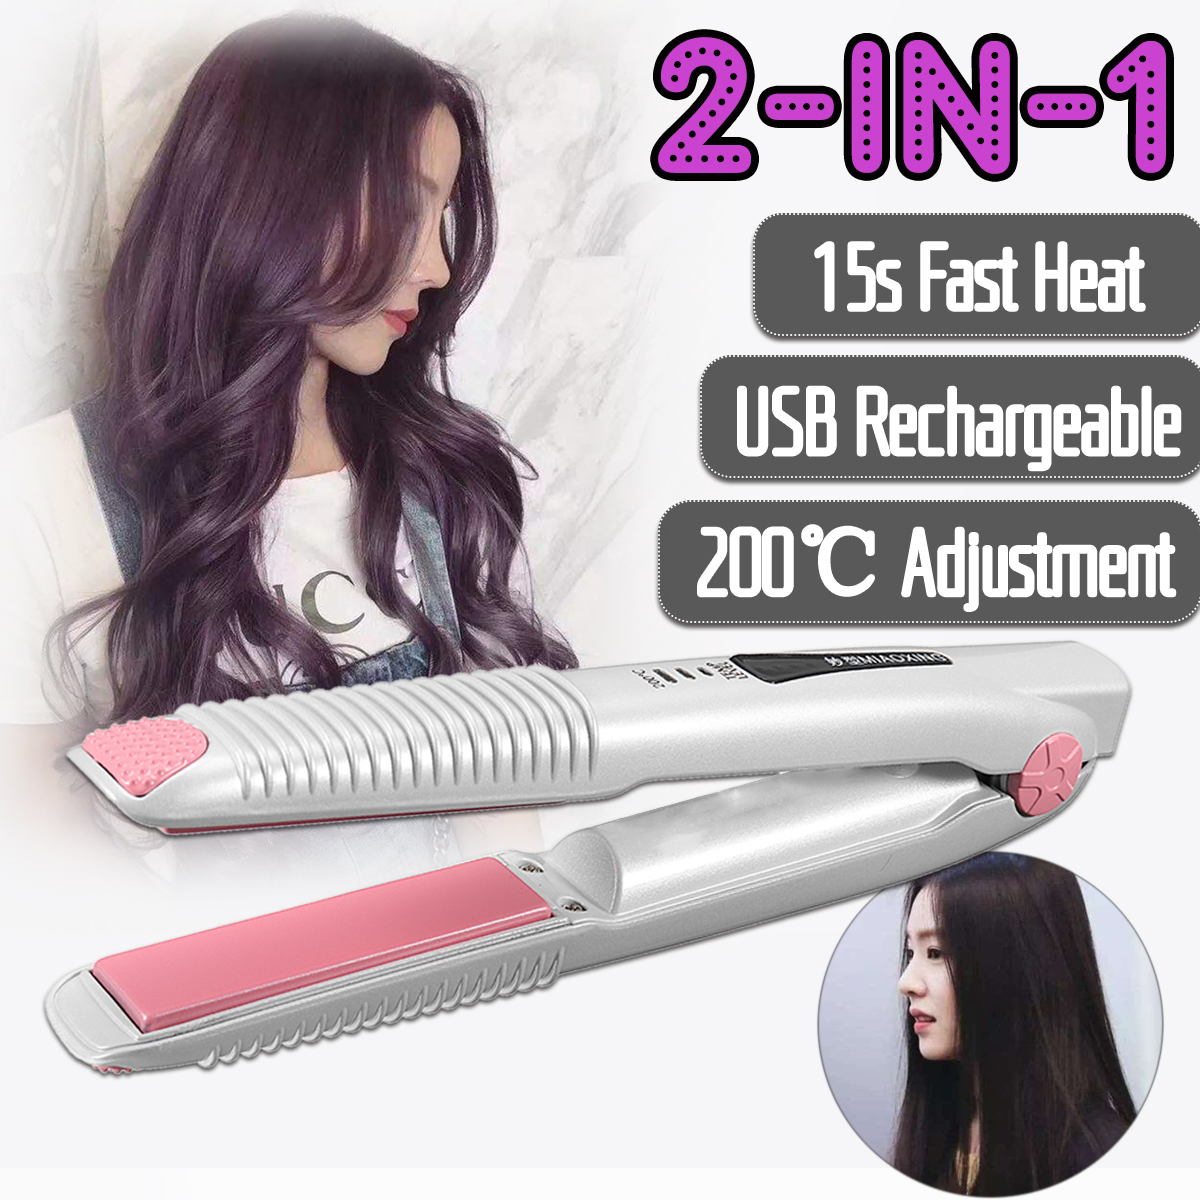 USB Rechargeable Curling Irons Professional Hair Curler Quality 2-in-1 Hair Curling & Straightening Iron Hair Styling Tools EU 3 in 1 straightening corrugated iron ceramic hair straightener and hair curler professional curling wand iron hair styling tools